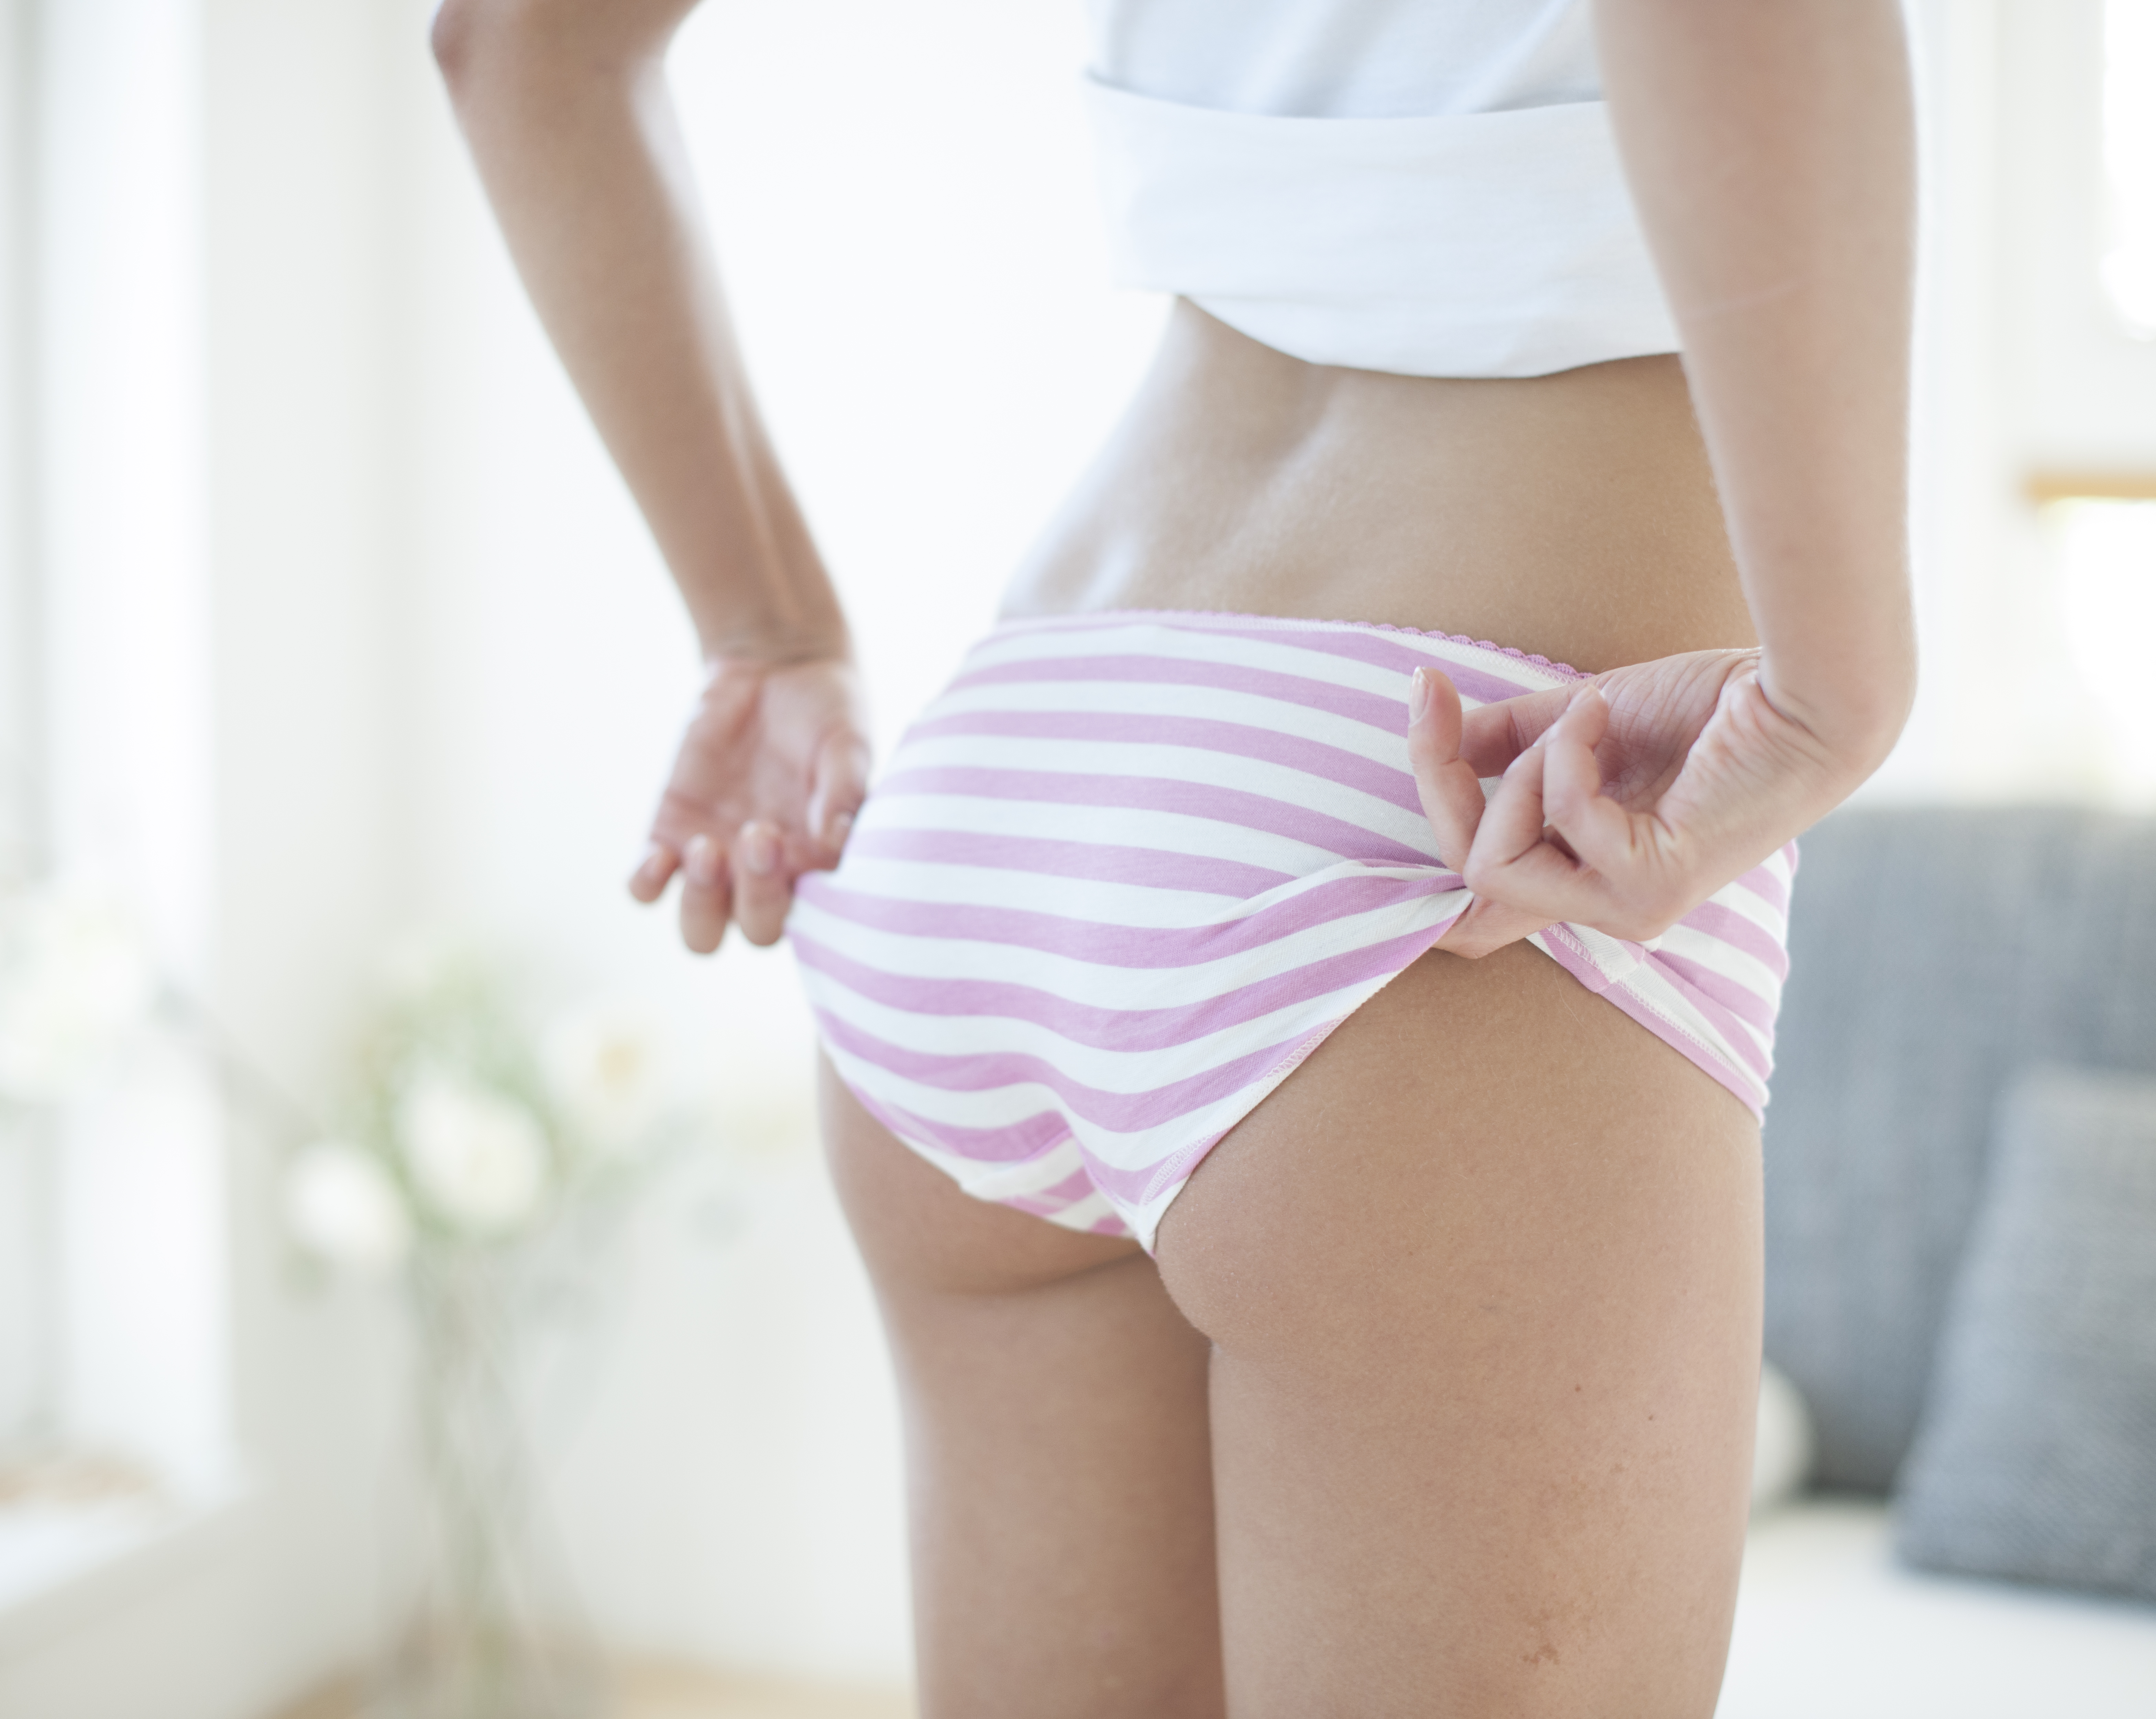 Make Your Own Padded Panties